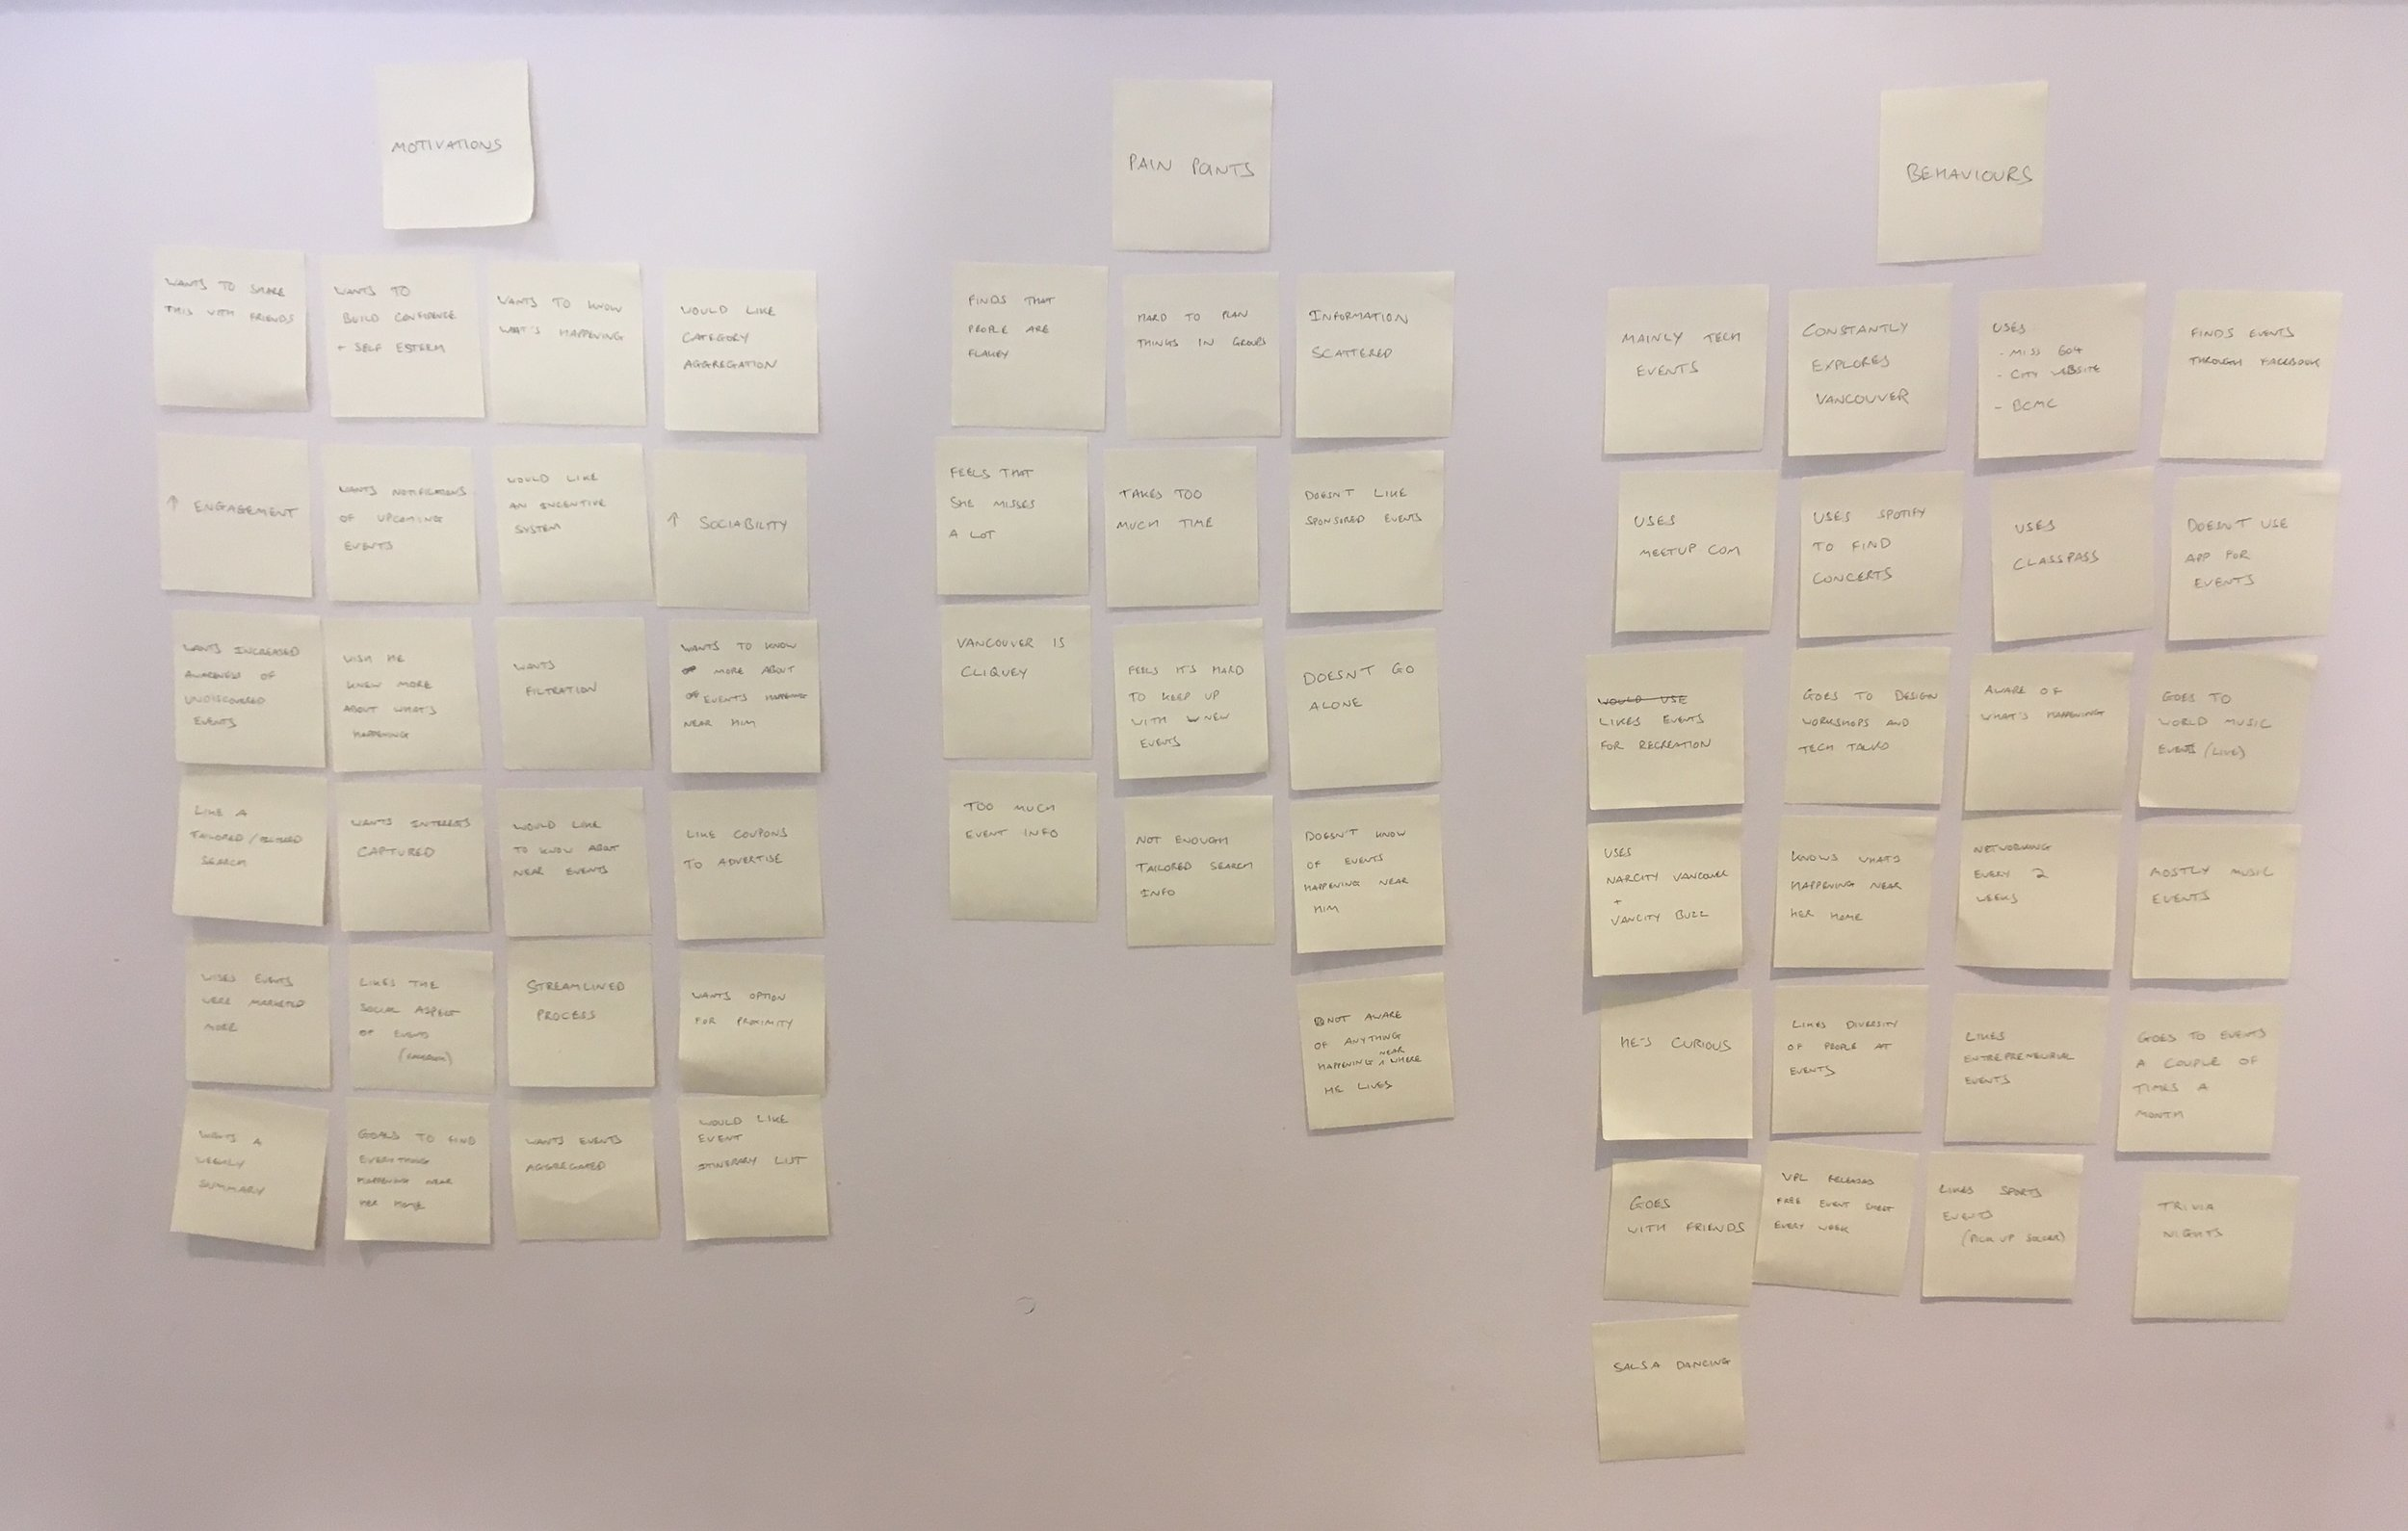 Data points from my interview organised into motivations, pain points and behaviours.